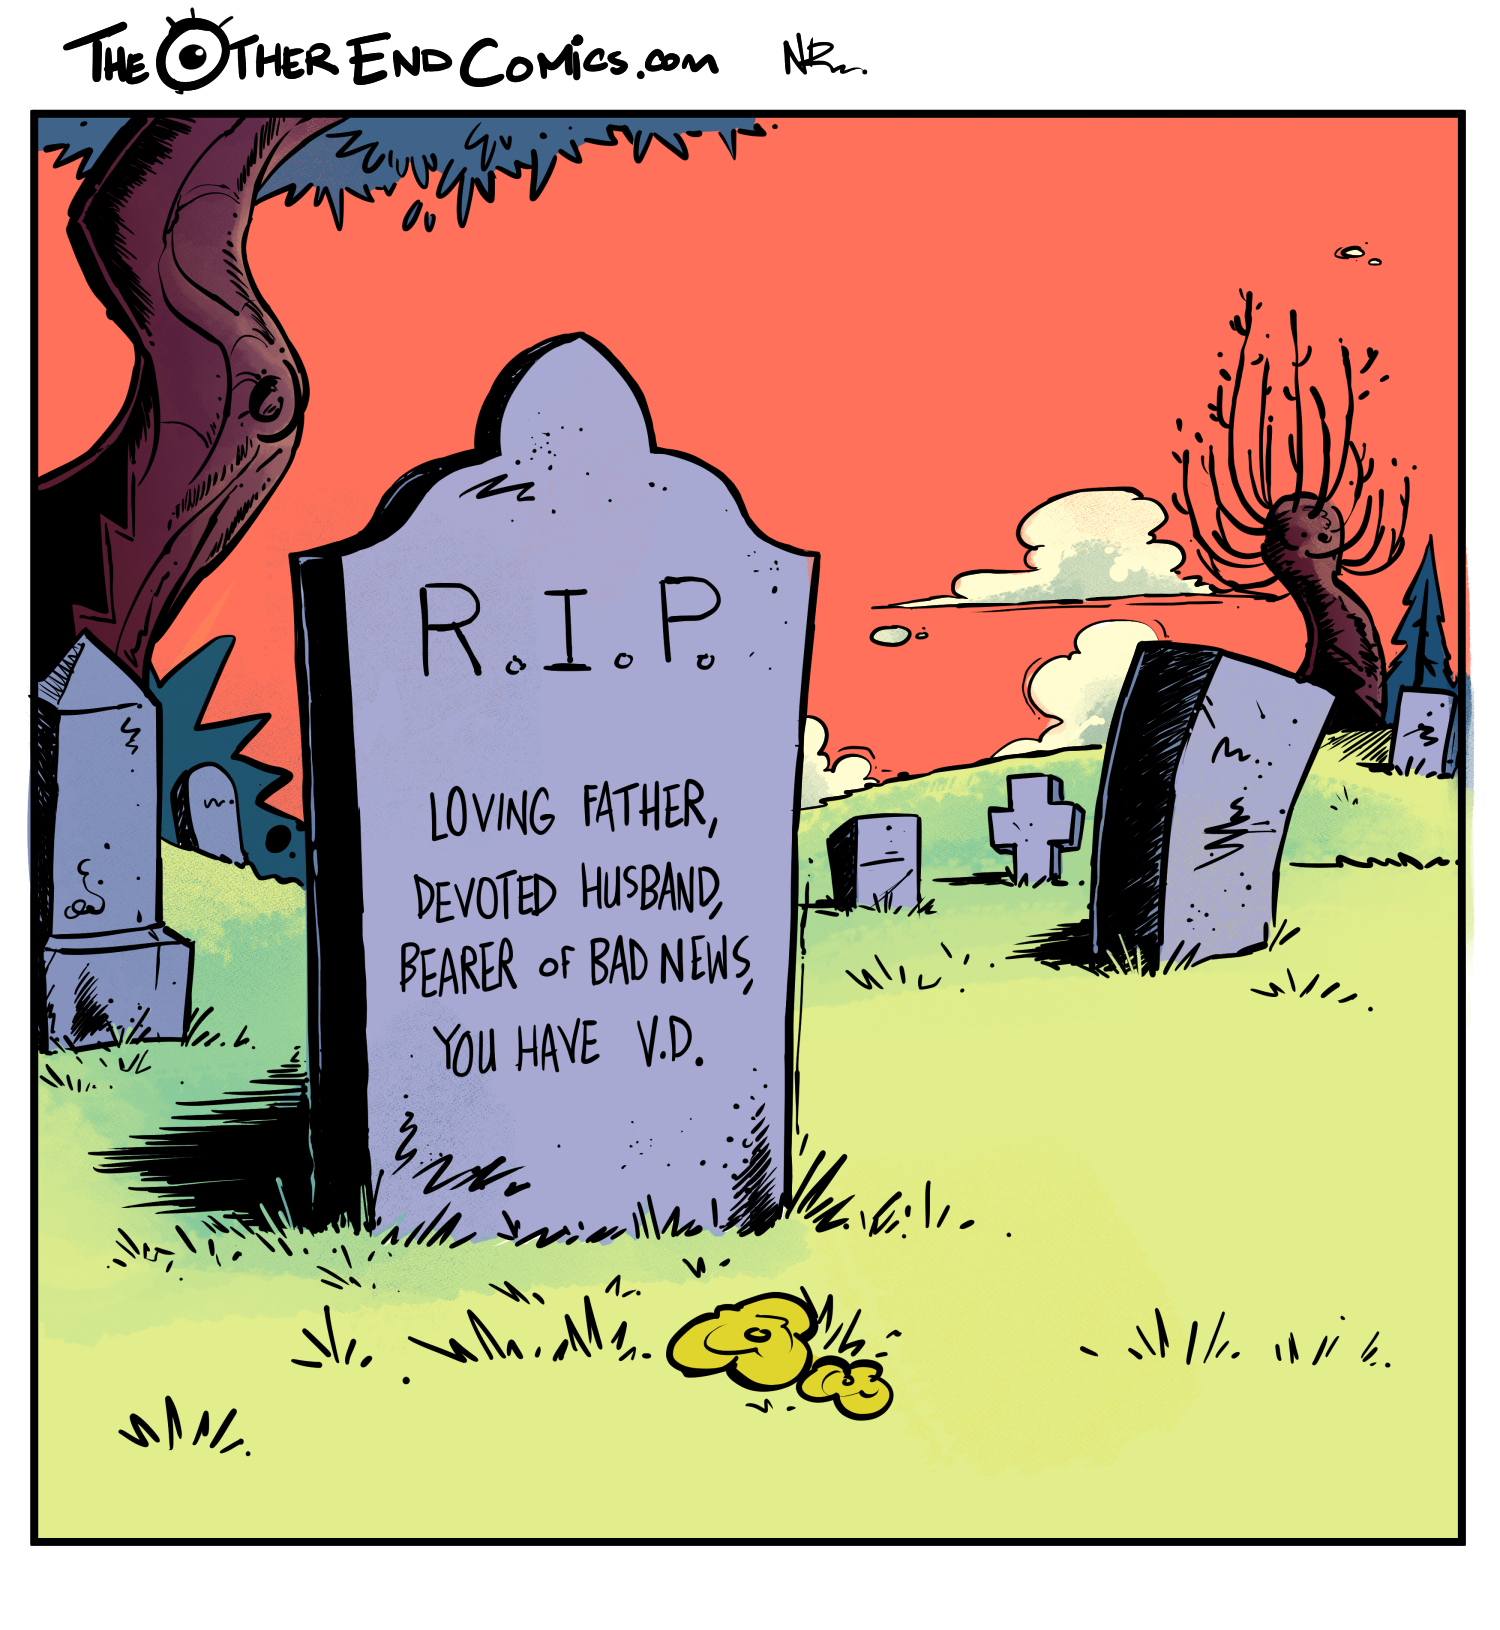 There's no name on that tombstone. This comic is so fake.